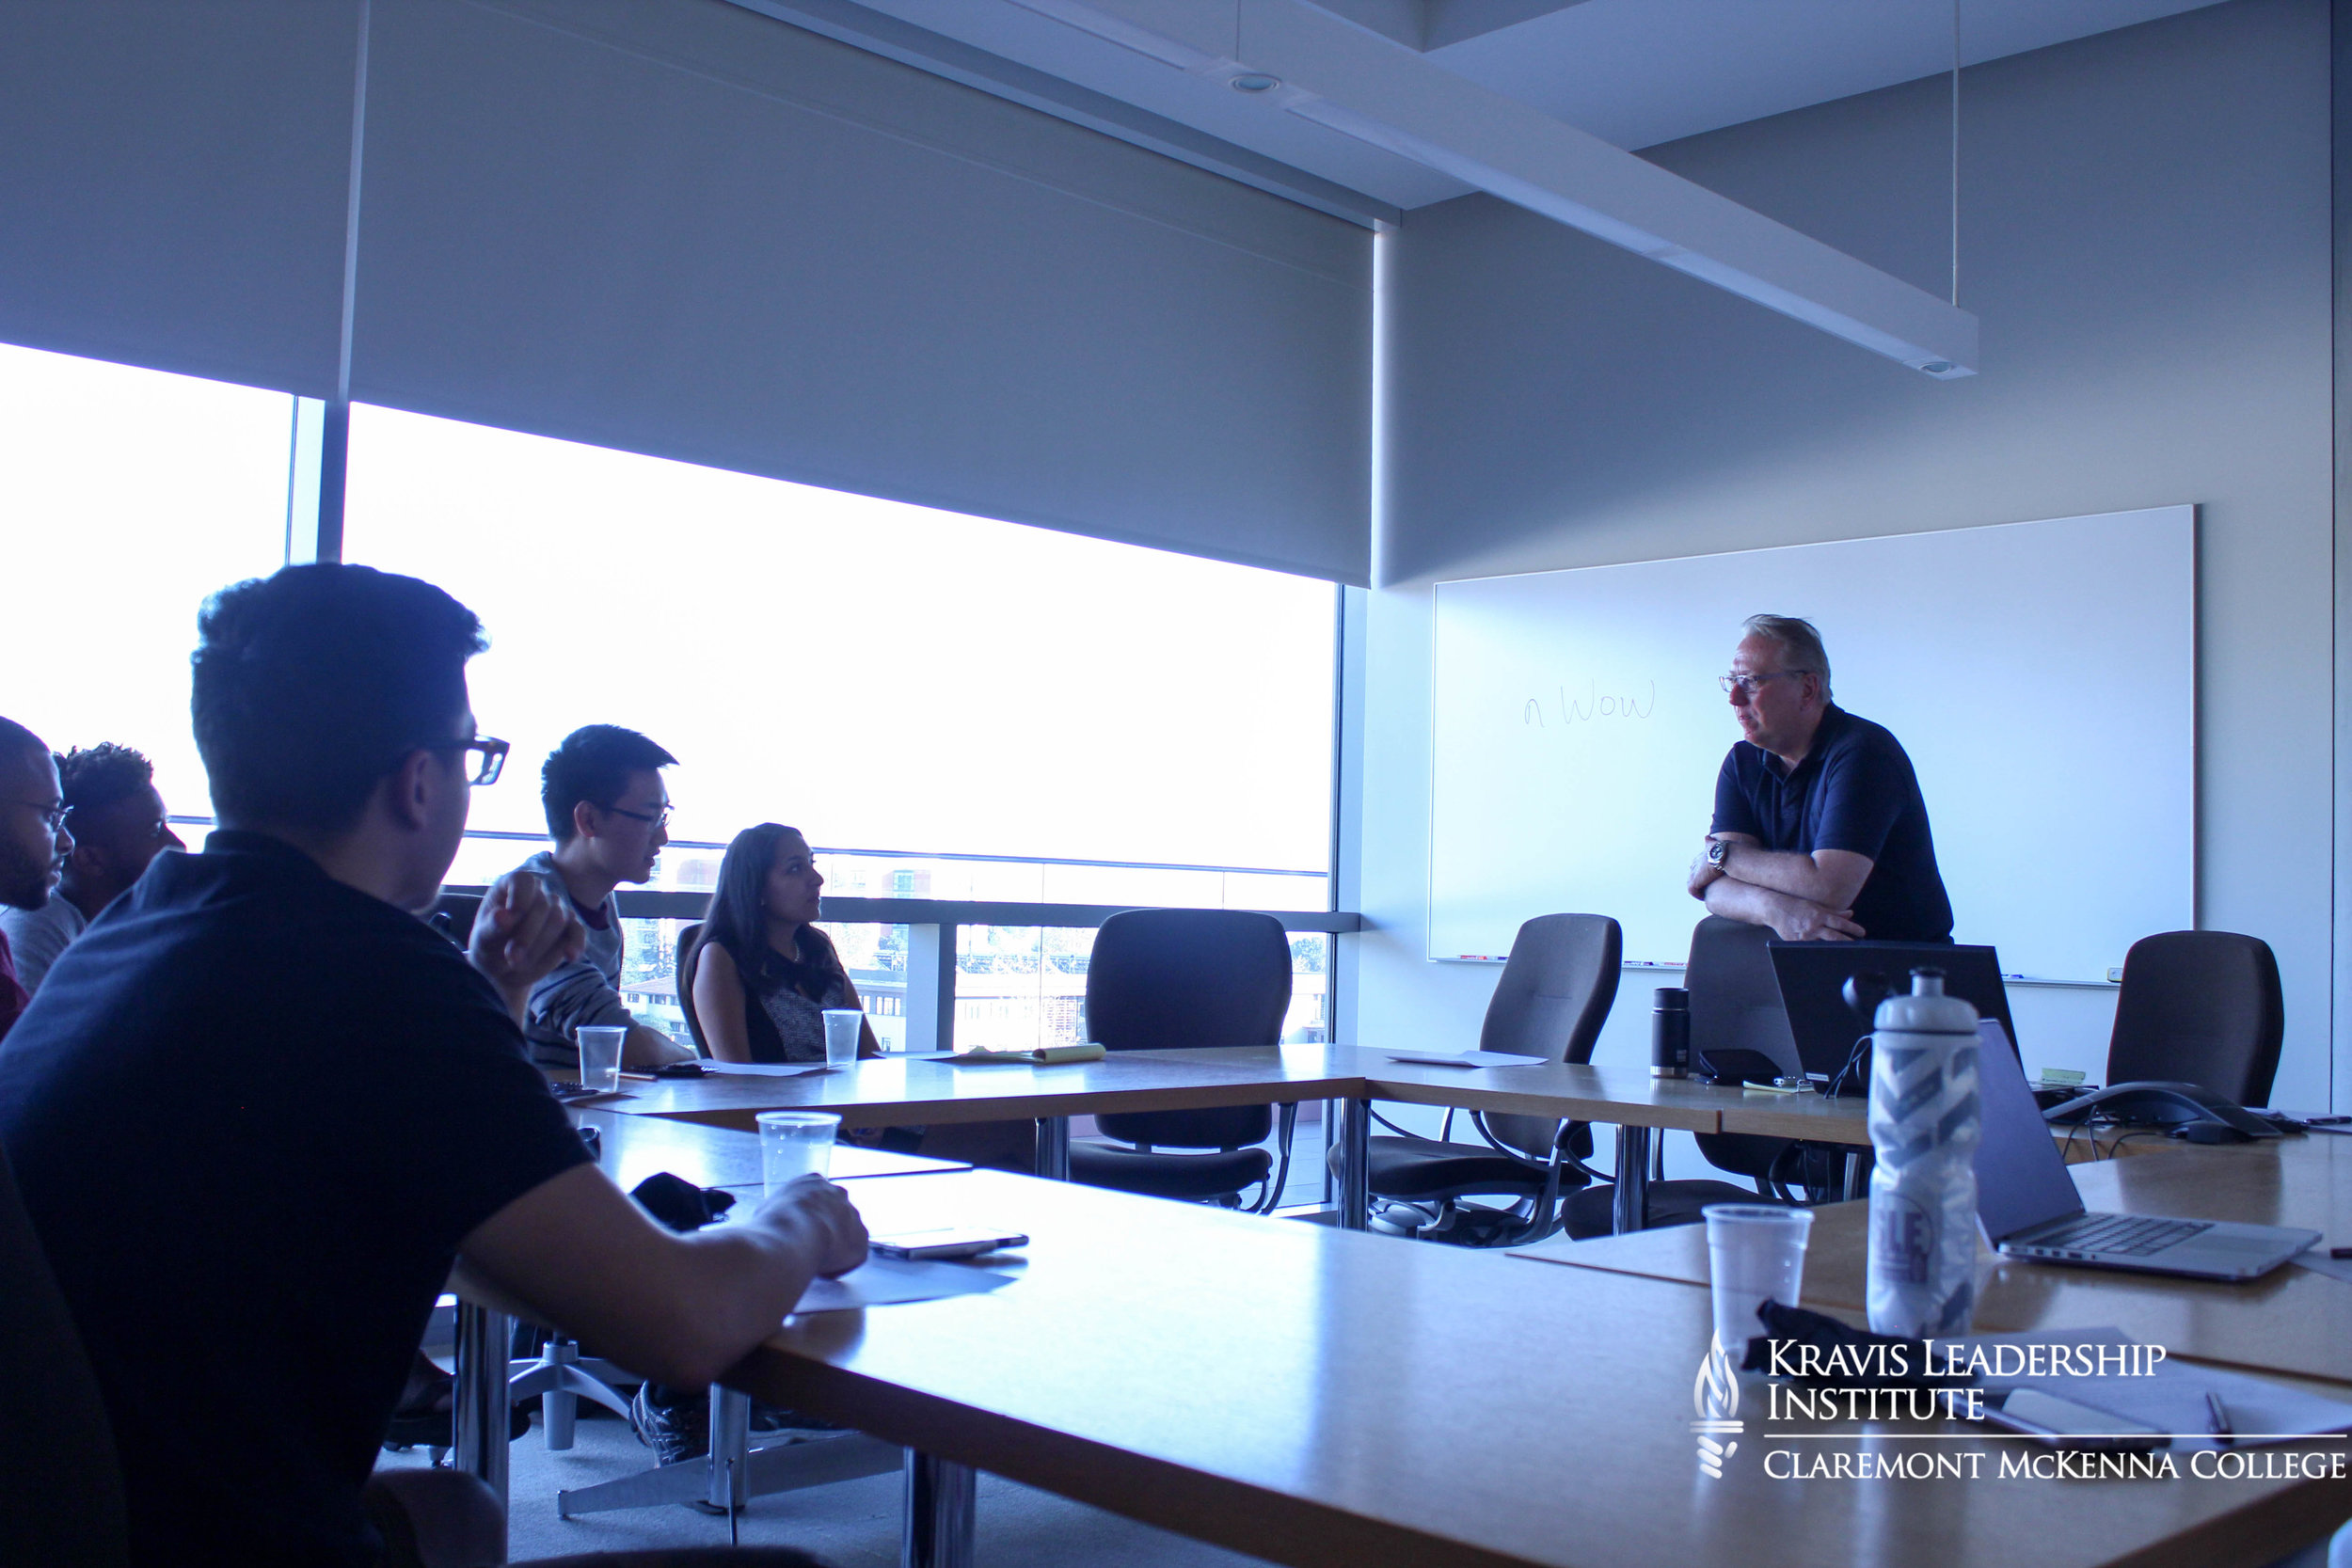 Professor David Day and workshop attendees discuss sources of power.